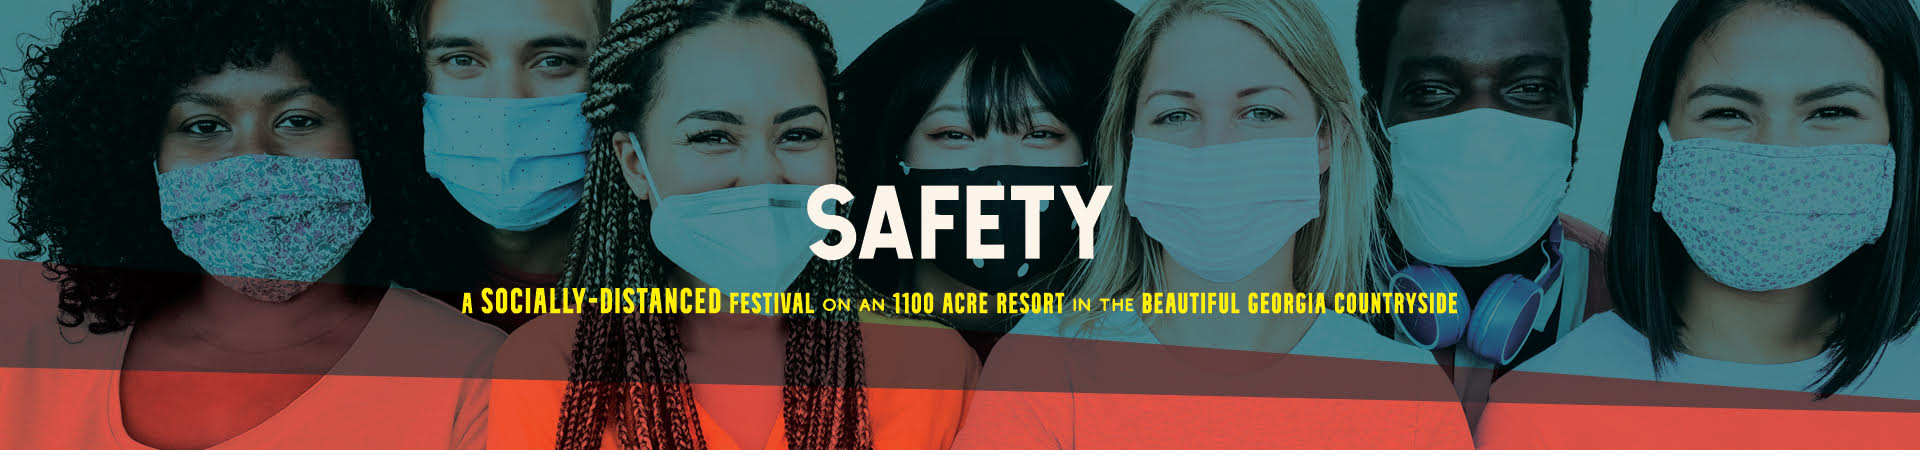 Safety Web Banner. A socially-distanced festival on an 1100 acre resort in the beautiful Georgia countryside. 7 masked, multi ethnic people smiling.